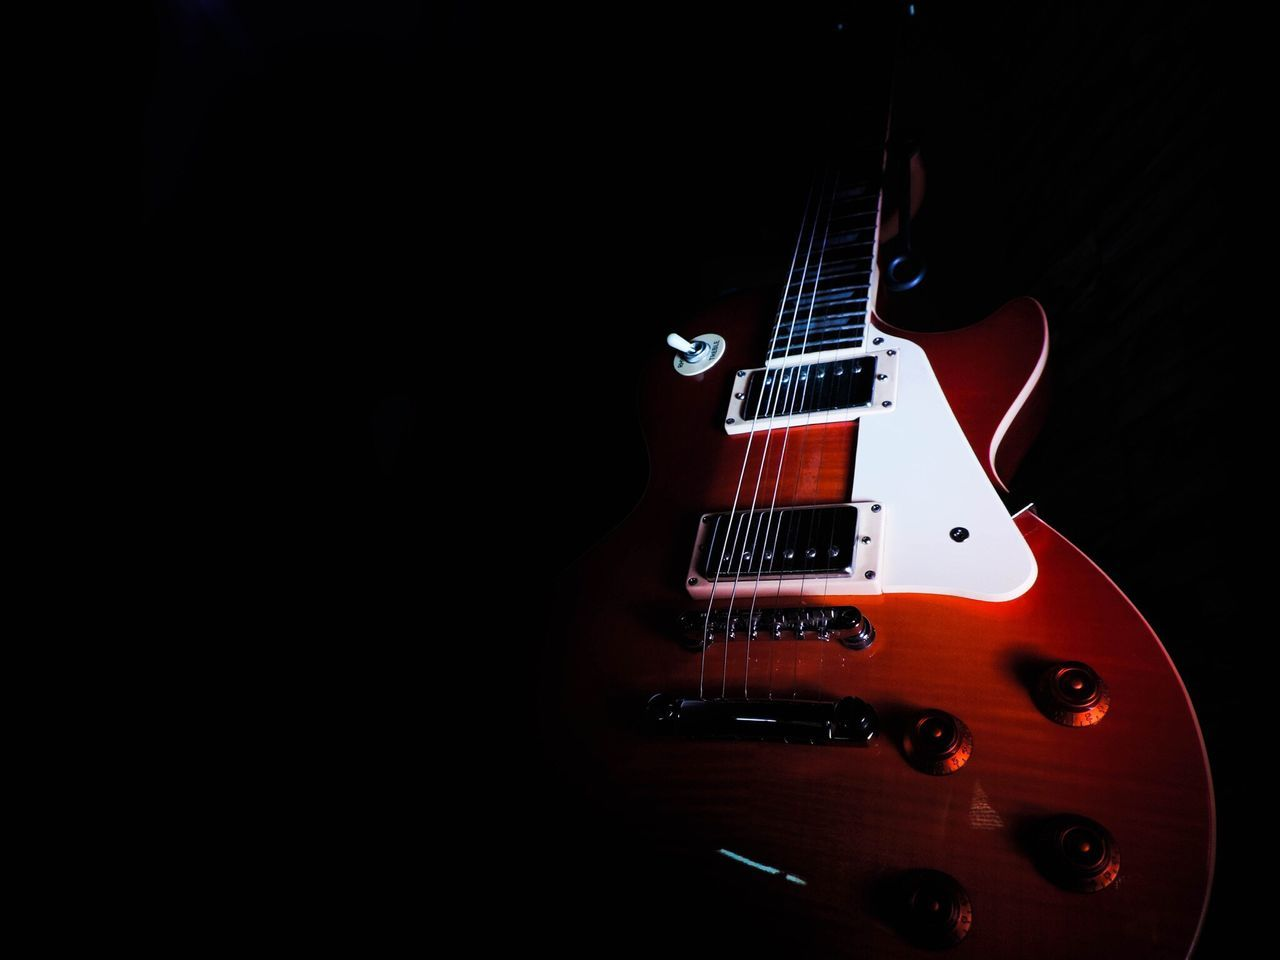 Close-Up Of Electric Guitar Against Black Background